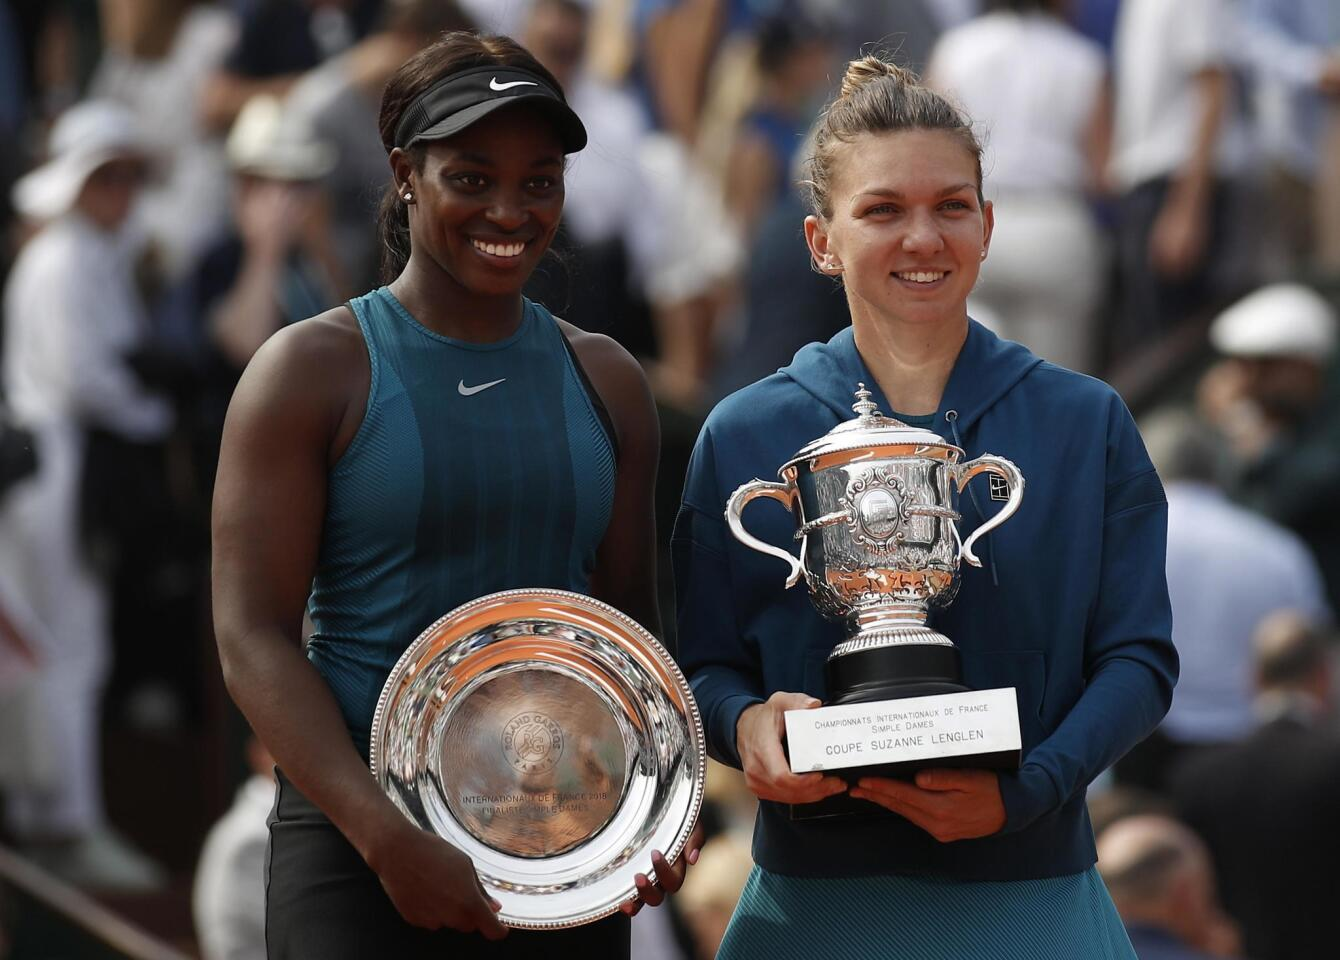 Paris (France), 09/06/2018.- Winner Simona Halep of Romania (R) and runner-up Sloane Stephens of the USA pose with their trophies after their women'Äôs final match during the French Open tennis tournament at Roland Garros in Paris, France, 09 June 2018. (Abierto, Abierto, Tenis, Rumanía, Francia, Estados Unidos) EFE/EPA/YOAN VALAT ** Usable by HOY and SD Only **